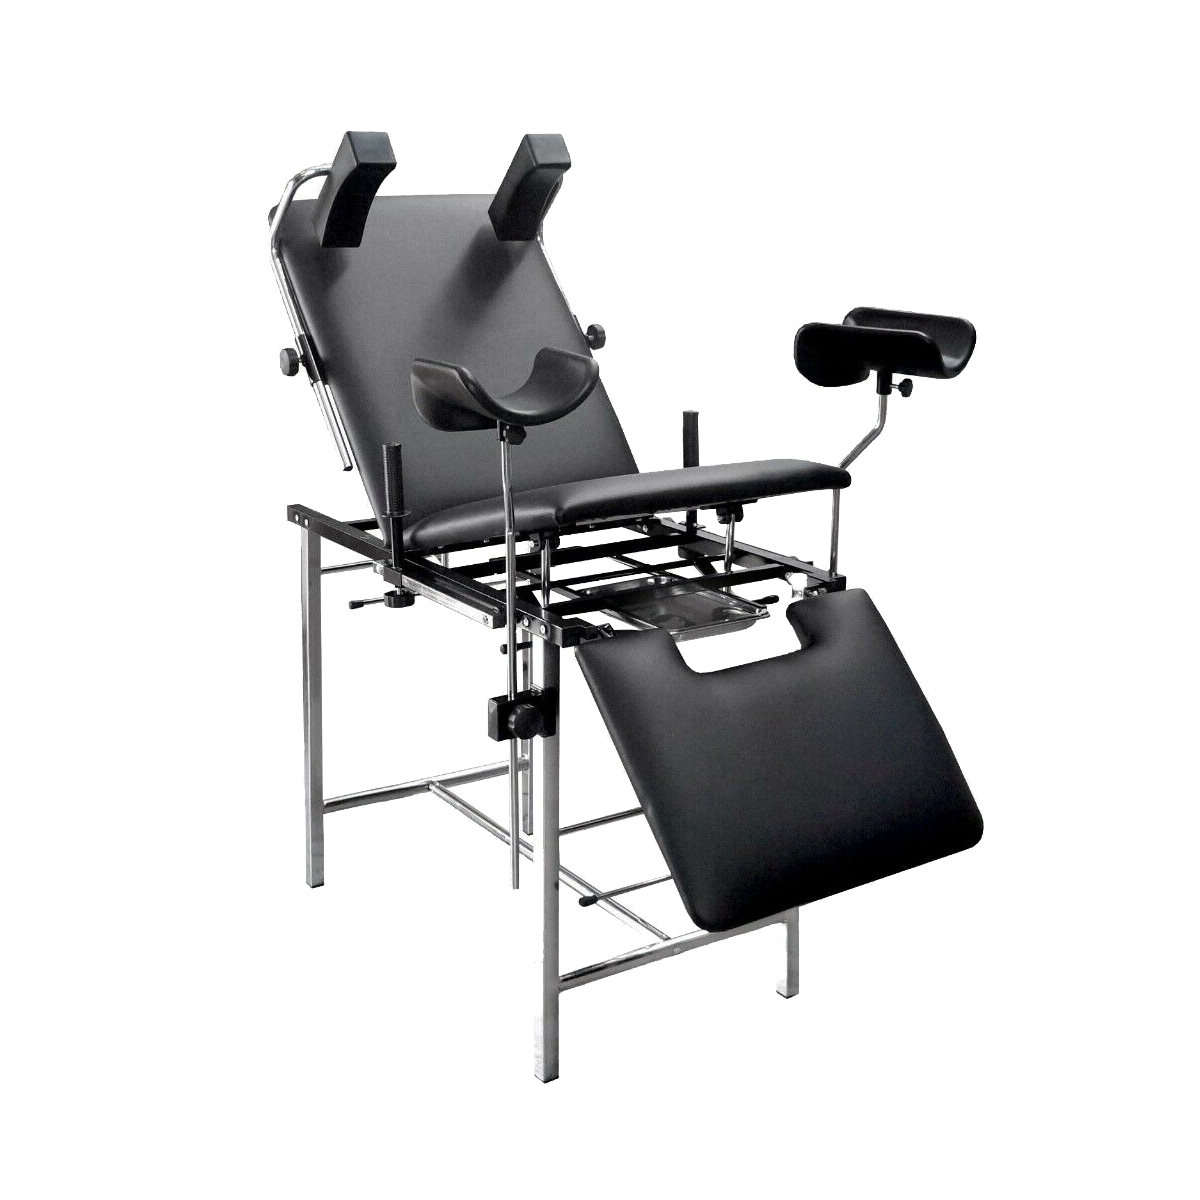 Gynecological examination tables